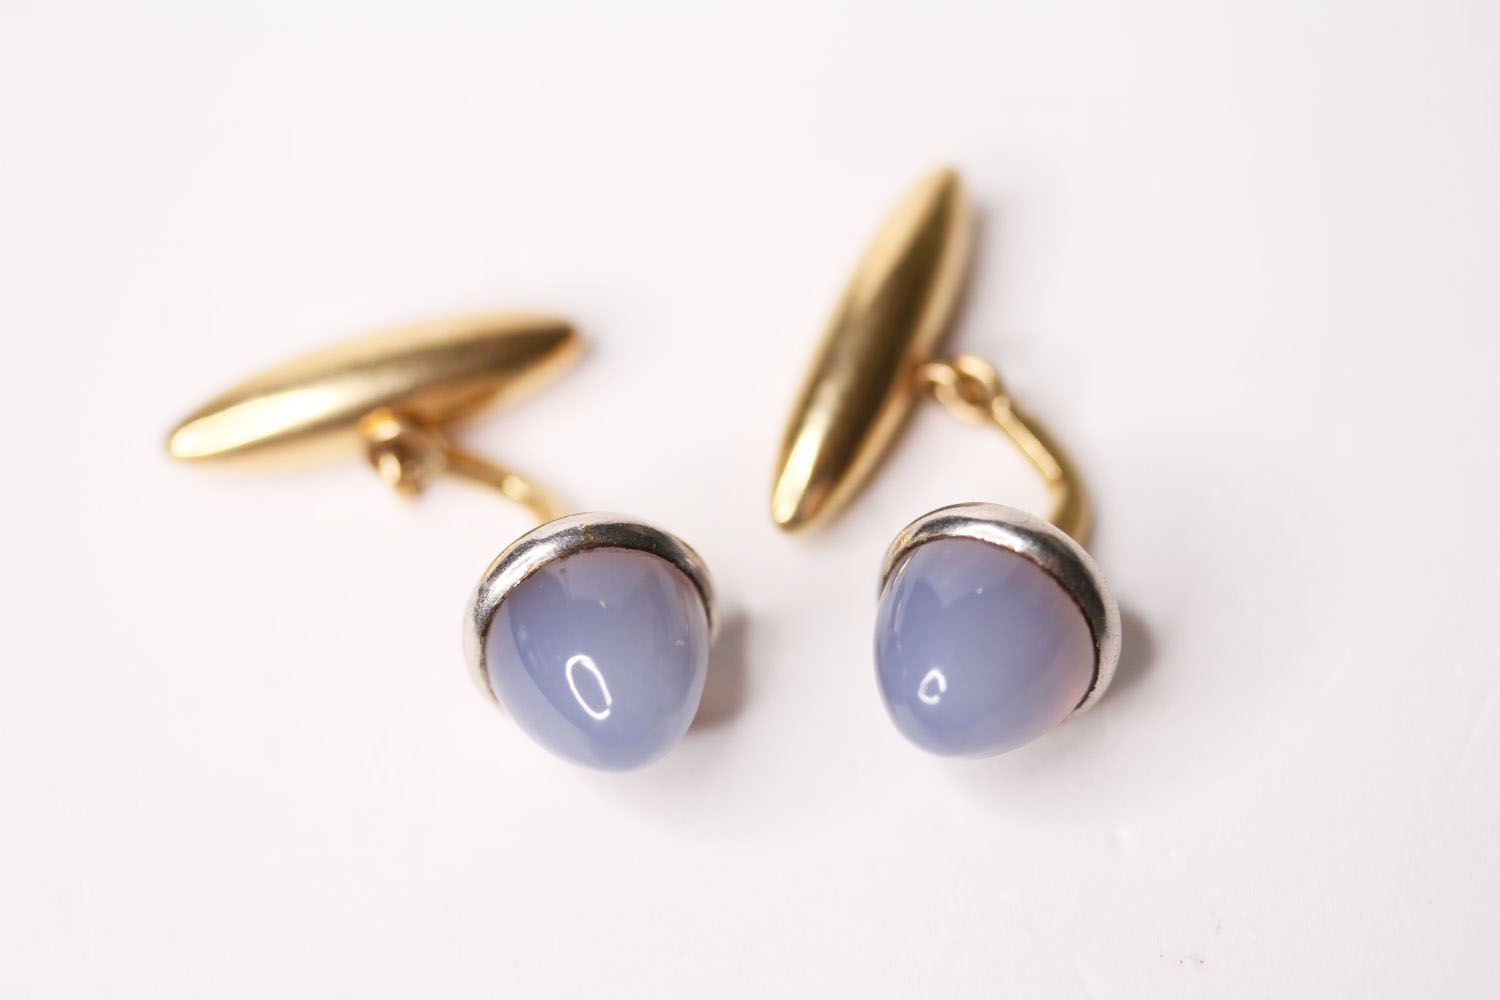 Pair Of Cabochon Chalcedony Cufflinks, each set with a cabochon cut chalcedony, 18ct gold